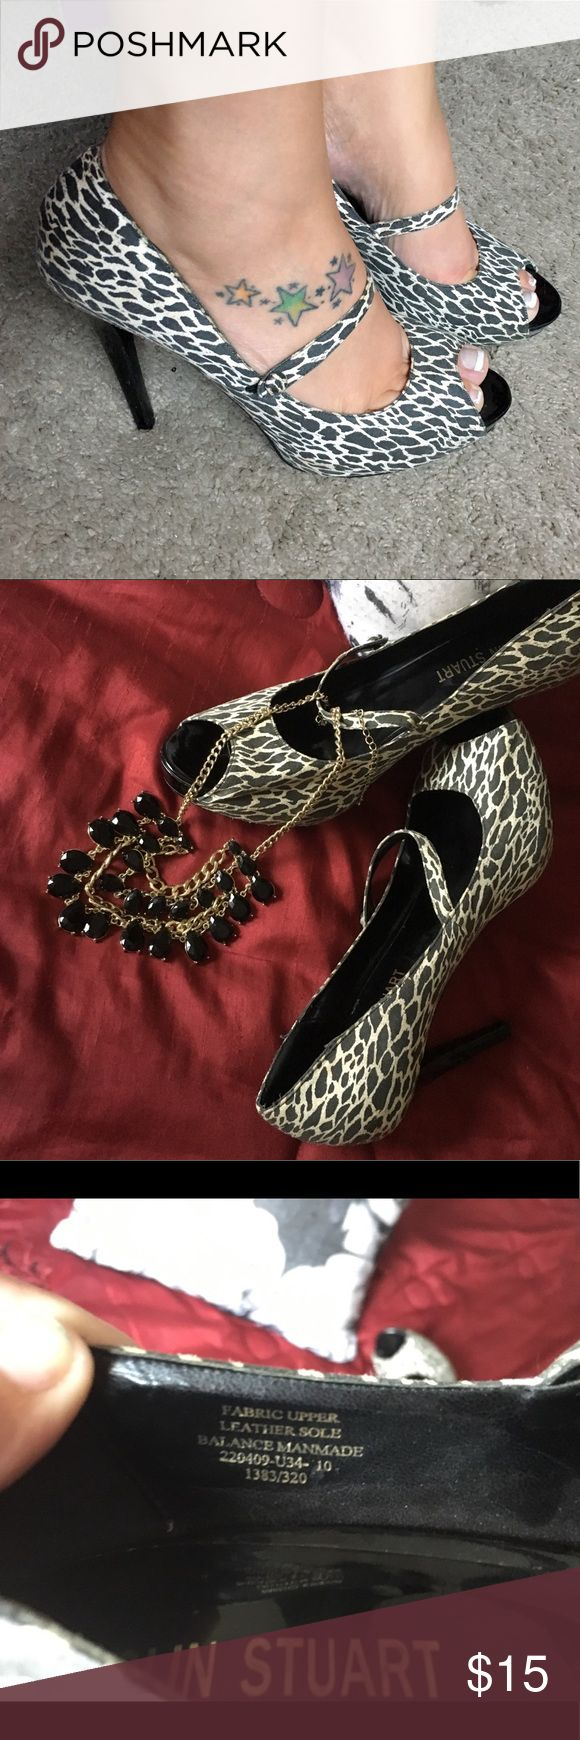 """Colin Stuart 5"""" heels GUC *FINAL MARKDOWN* Colin Stuart women's print 5"""" heels, size 10, these heels are so hot 🔥 I wore them a handful of times back in my days of modeling and wearing heels daily. I didn't clean them they've just sat in my closet being unloved! They do fit pretty good and I usually wear a 9 1/2 in heels, the strap at the top actually keep your foot in place even if the fit is off! Thanks for looking! Colin Stuart Shoes Heels"""